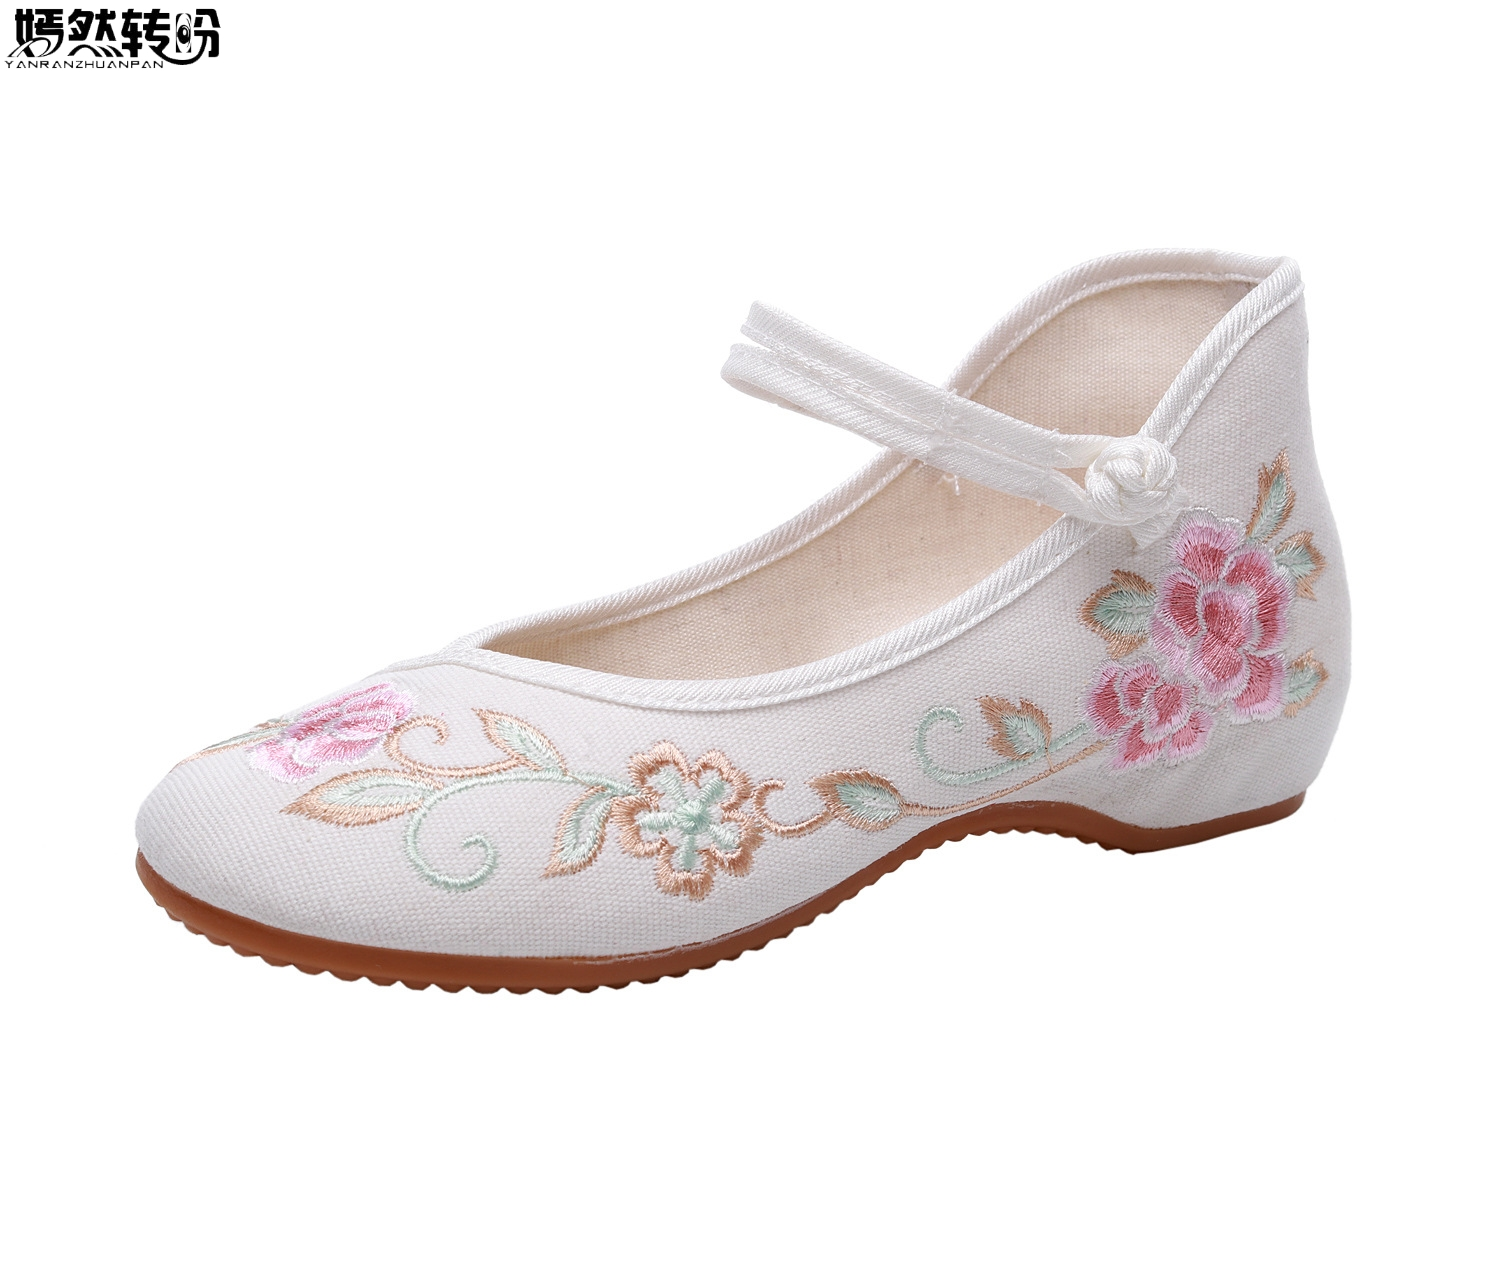 2020 Spring Summer Woman Flat Shoes Vintage Flowers Embroidery Shoes Women Chinese Old Peking Casual Cloth Dancing Shoes